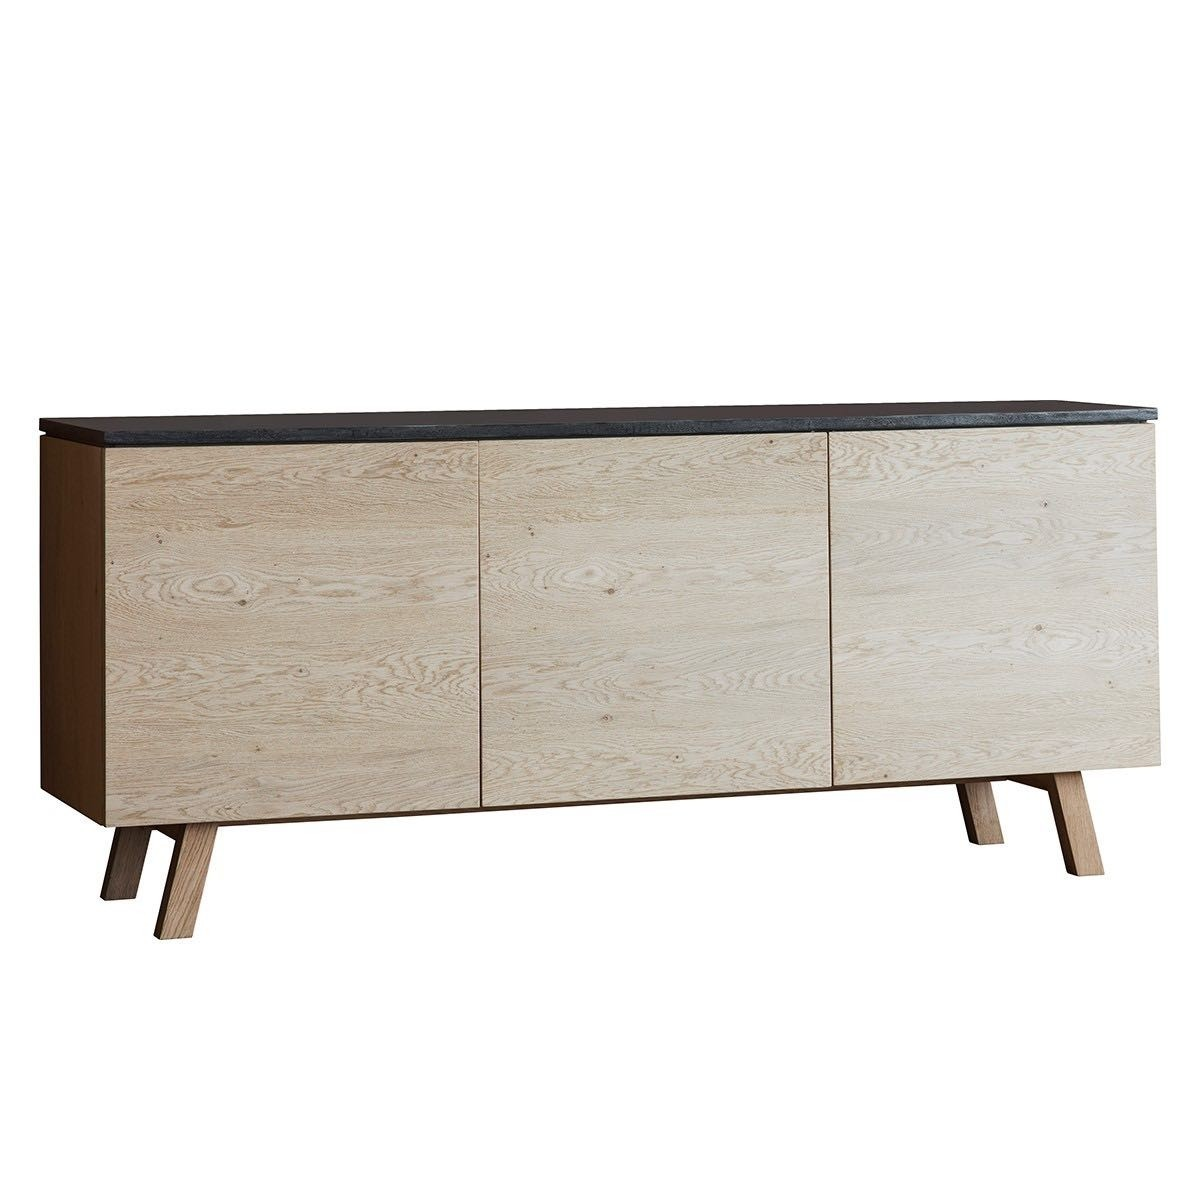 Brixton Resin & Oak Timber 3 Door Sideboard, 160cm